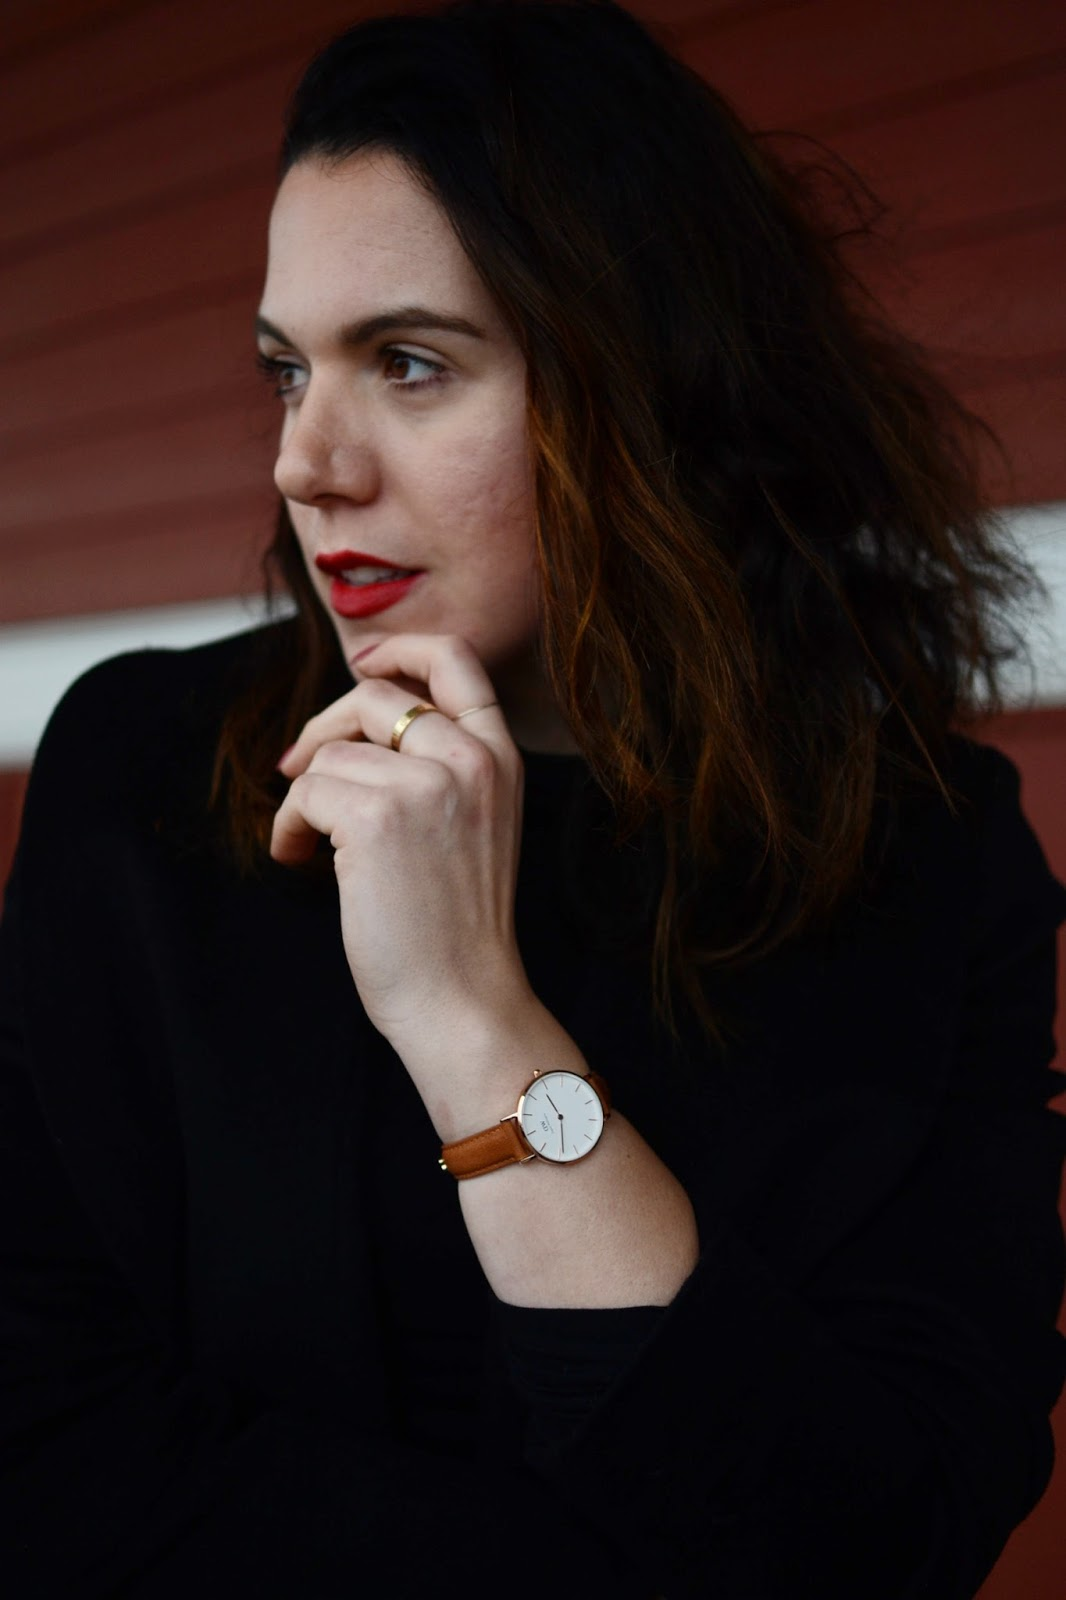 Daniel Wellington rose gold watch vancouver fashion blogger aleesha harris